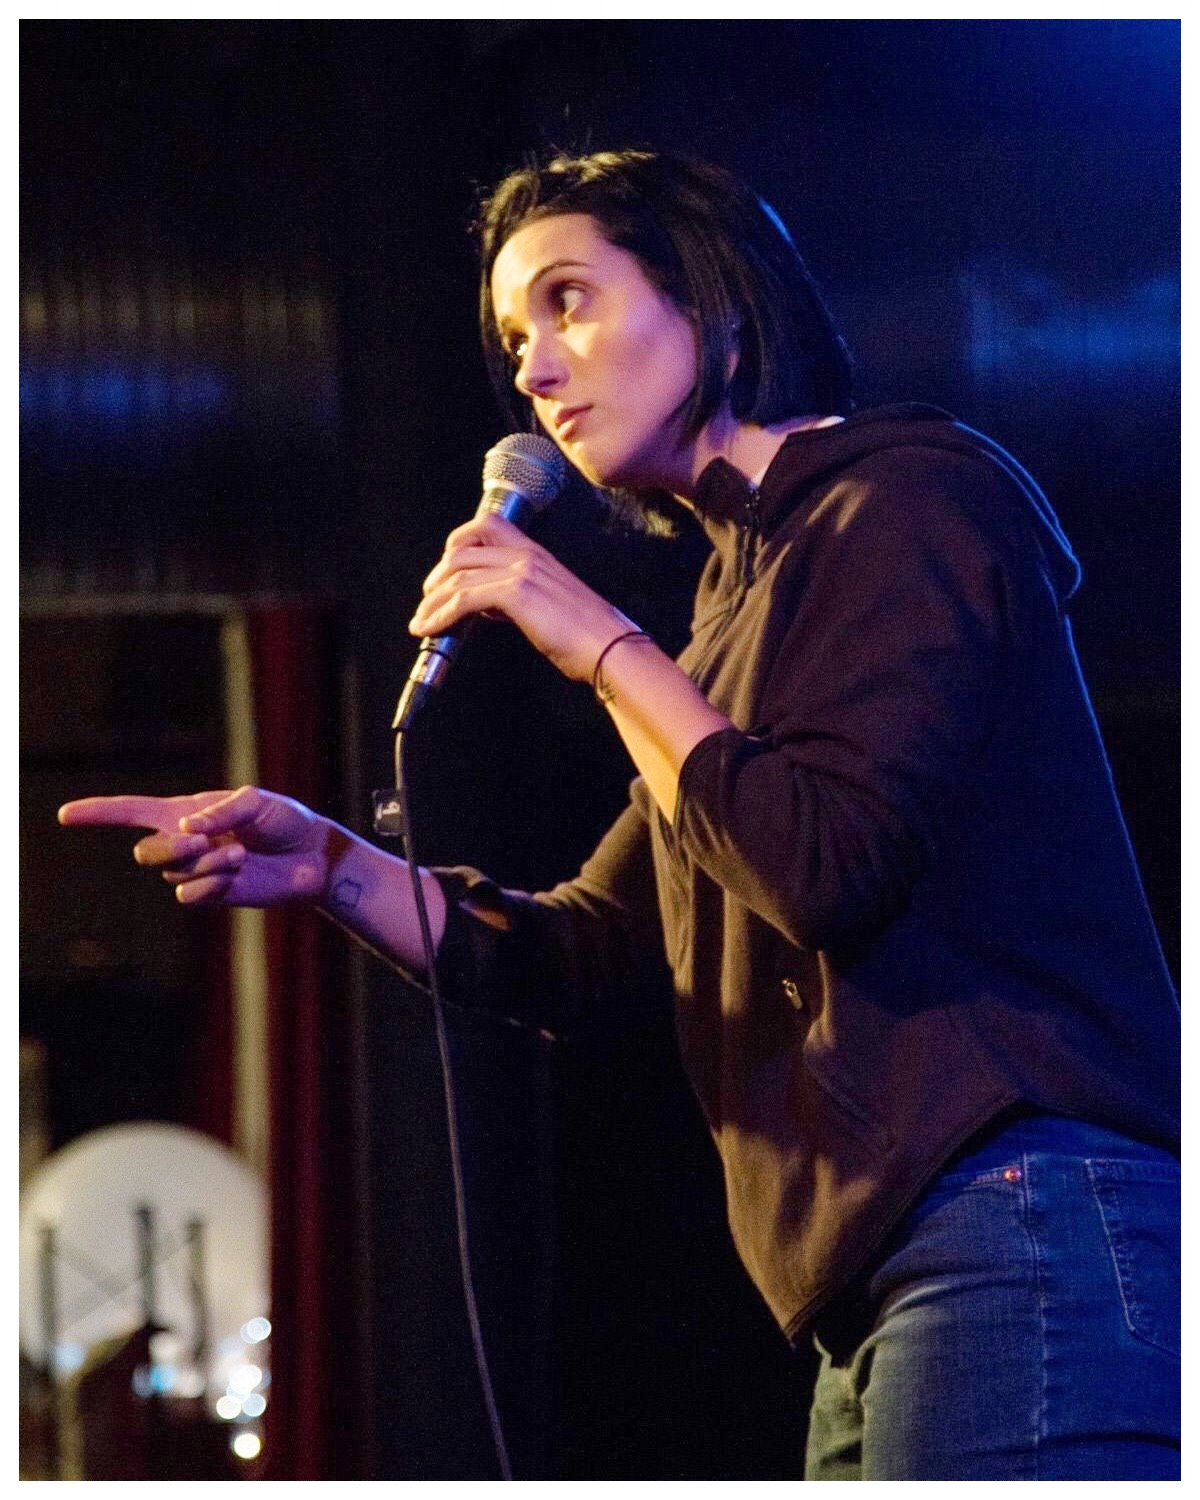 About Madison Erceg ... - madisonerceg.comCurrently the Marketing Director of the Laughing Skull Lounge, Madison Erceg is a stand-up comic based in Atlanta, GA who has featured for Iliza Shlesinger & shared the stage with Chris Tucker, Ms. Pat, and Tom Segura. She can be seen performing standup all over the Southeast. In Los Angeles, Madison worked as a writer for multiple production houses. Every third Saturday of the month, Madison runs & hosts